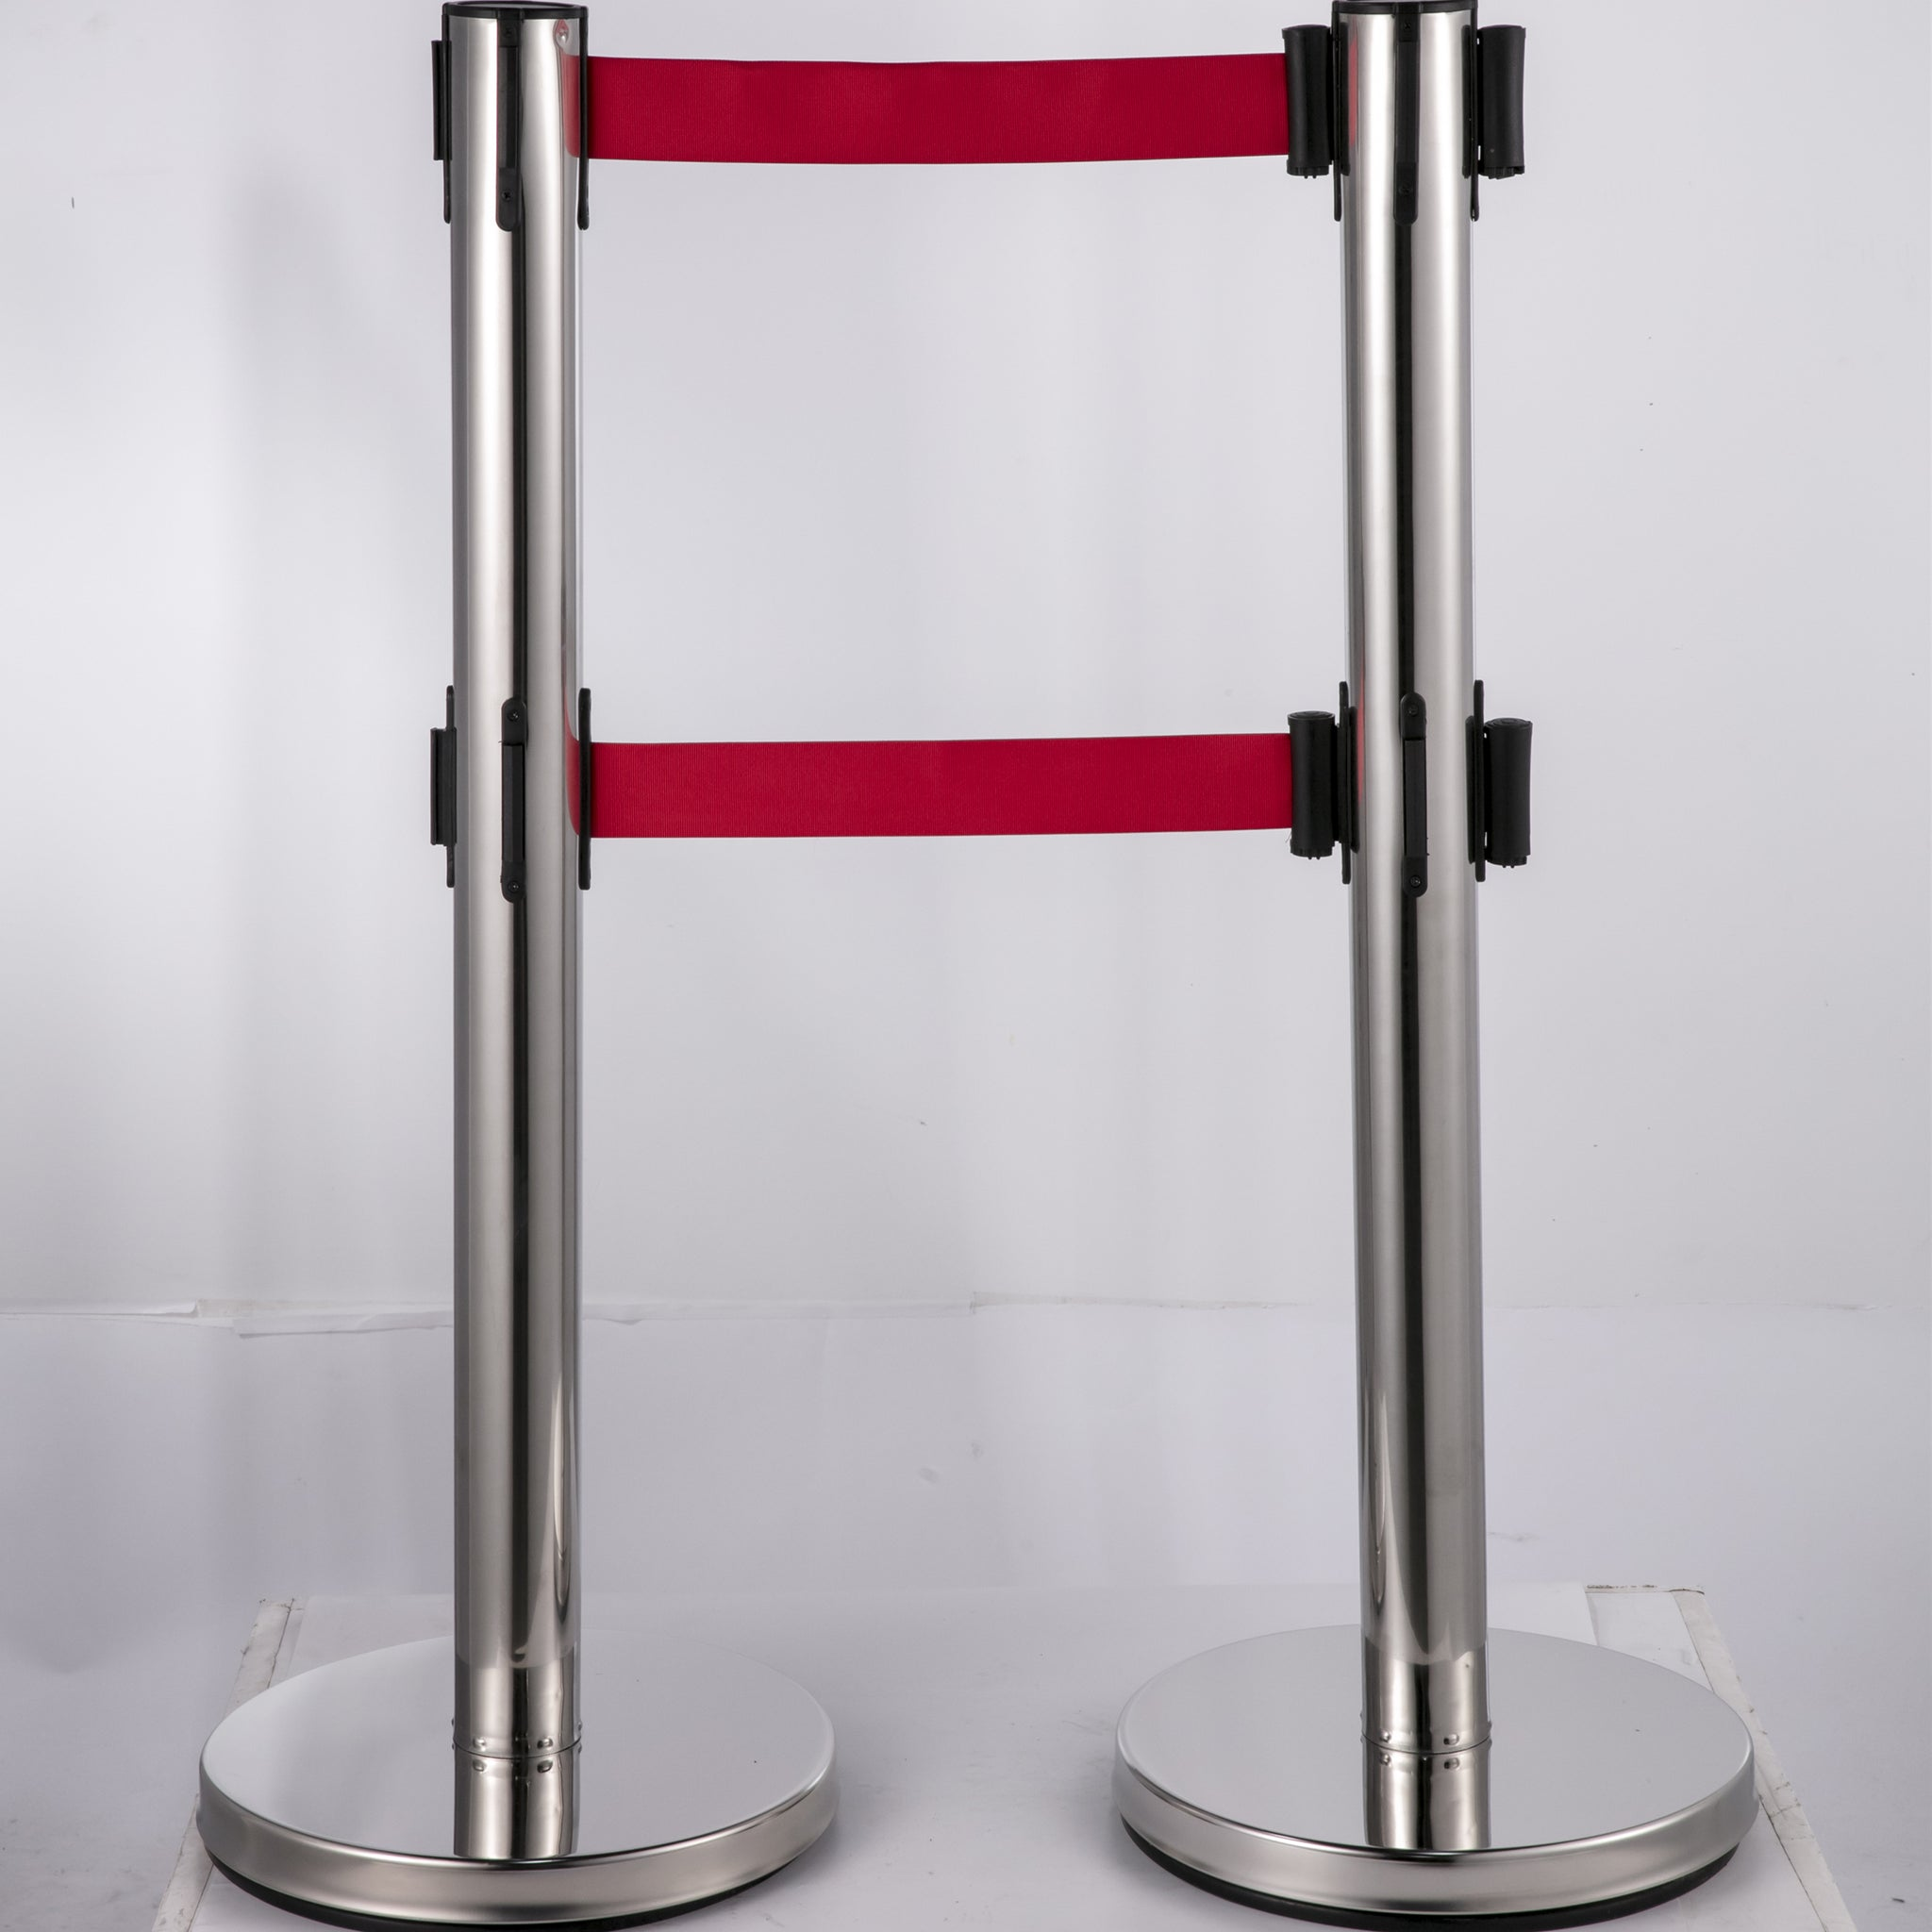 Vevor Crowd Control Barriers Line Dividers With Dual Red Belts Iron Base 6 Pcs